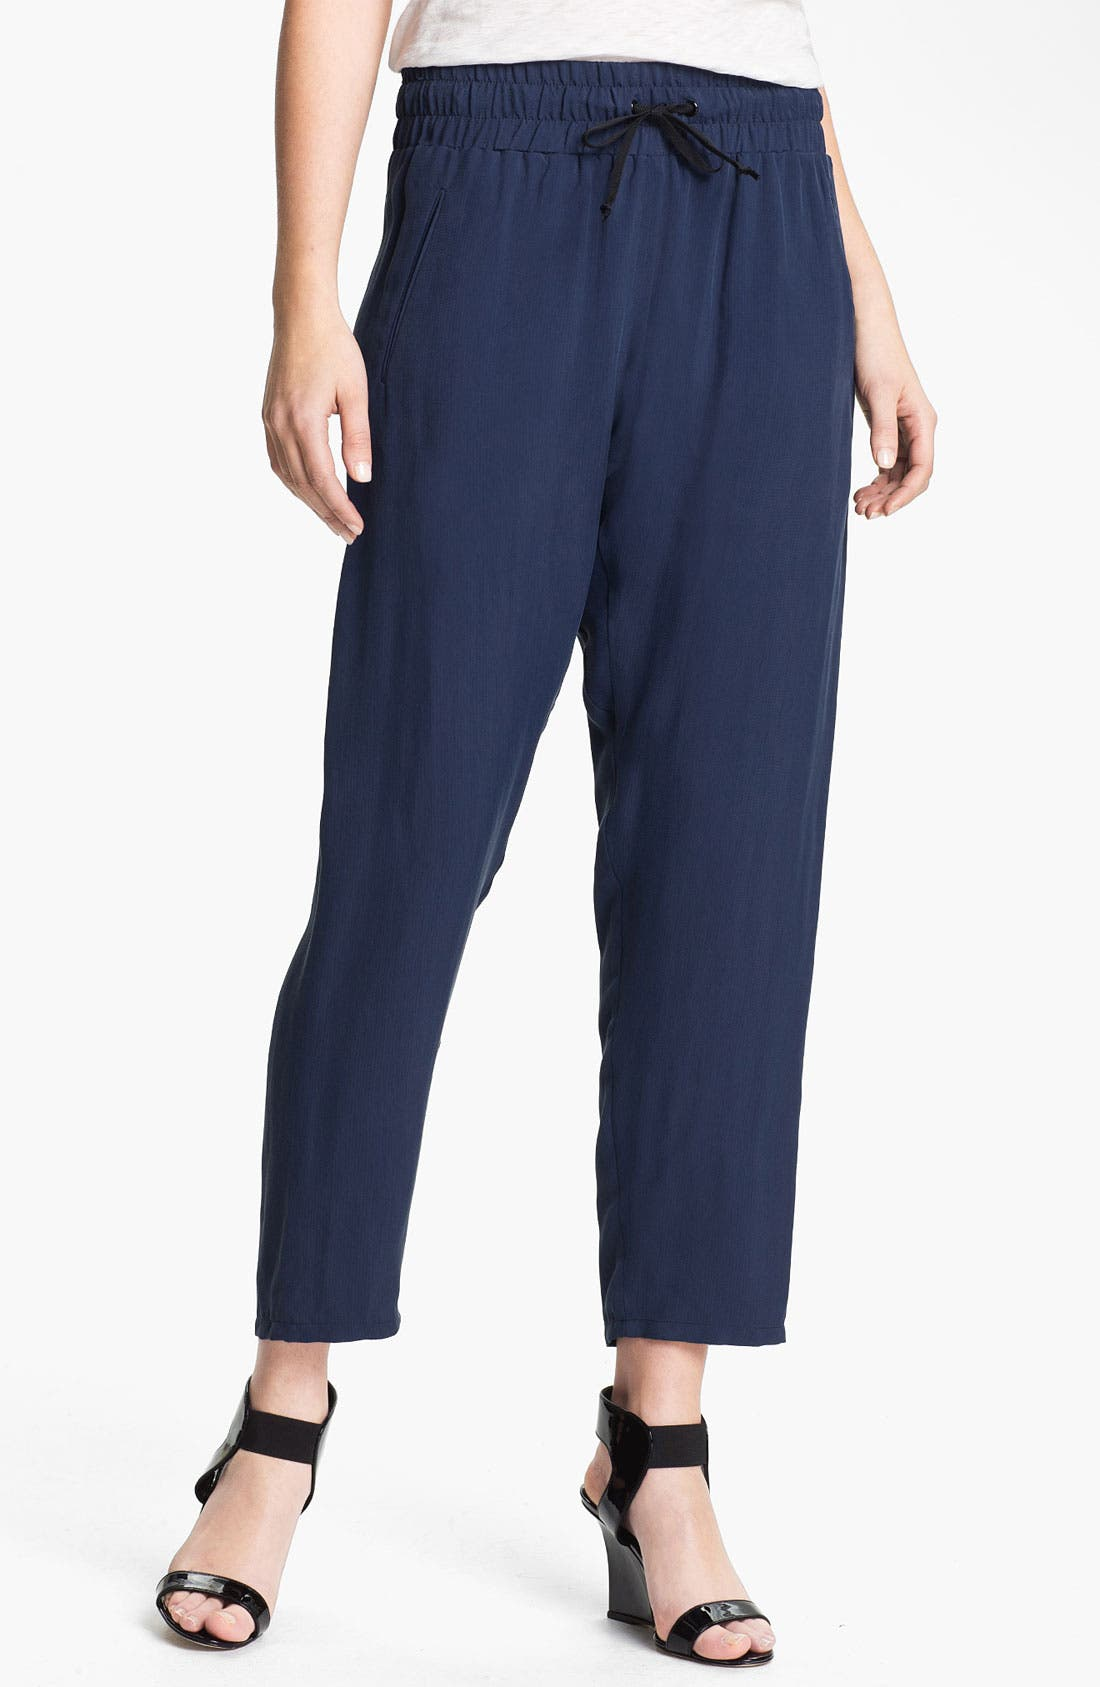 Alternate Image 1 Selected - rag & bone Drawstring Pants